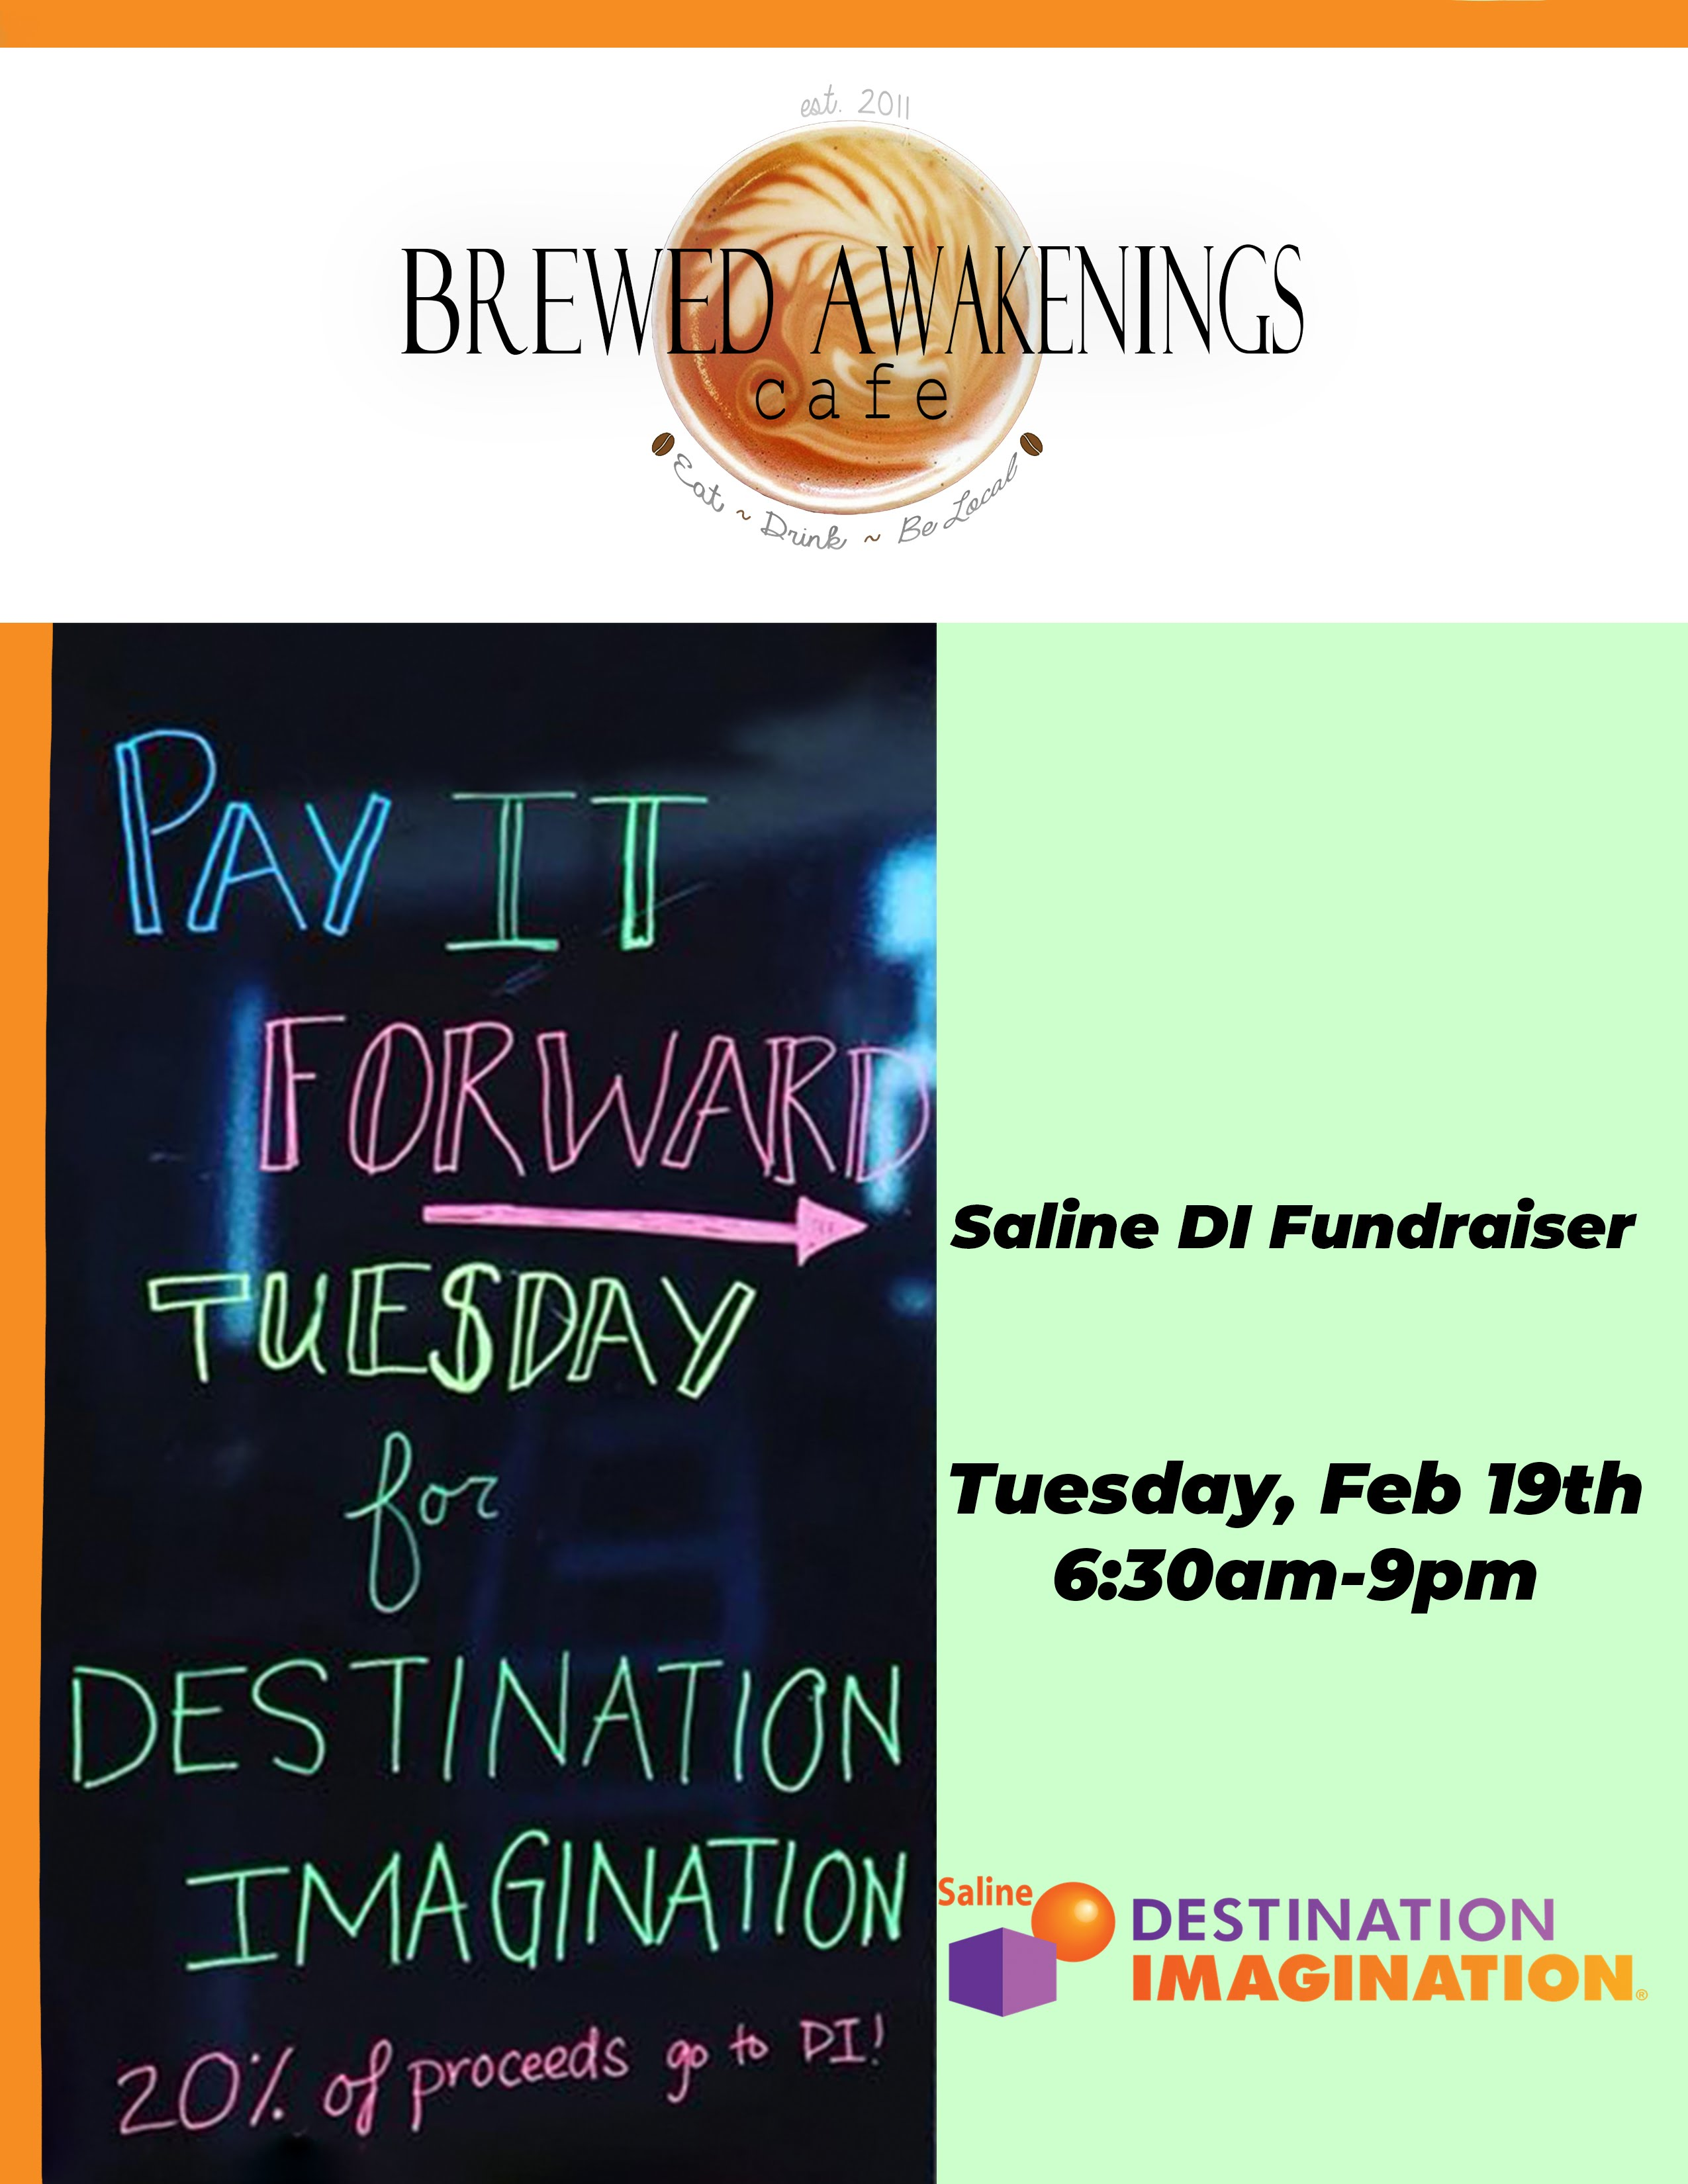 Brewed Awakenings will donate 20% of sales on 2/19/2019